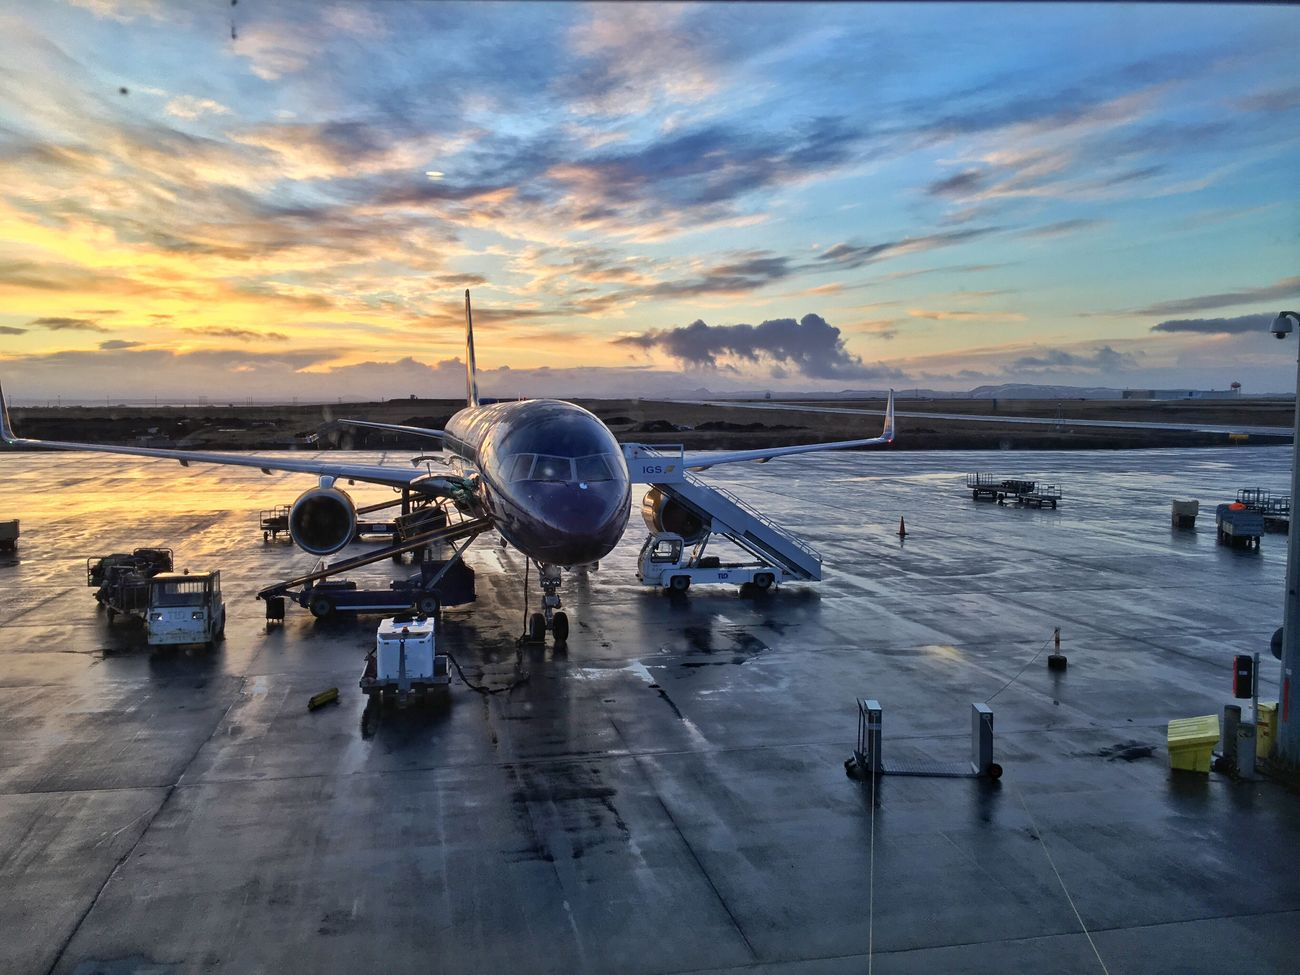 Sunrise Good Morning Airport Waiting On My Way Home Clouds And Sky Iceland116 Iceland_collection Plane